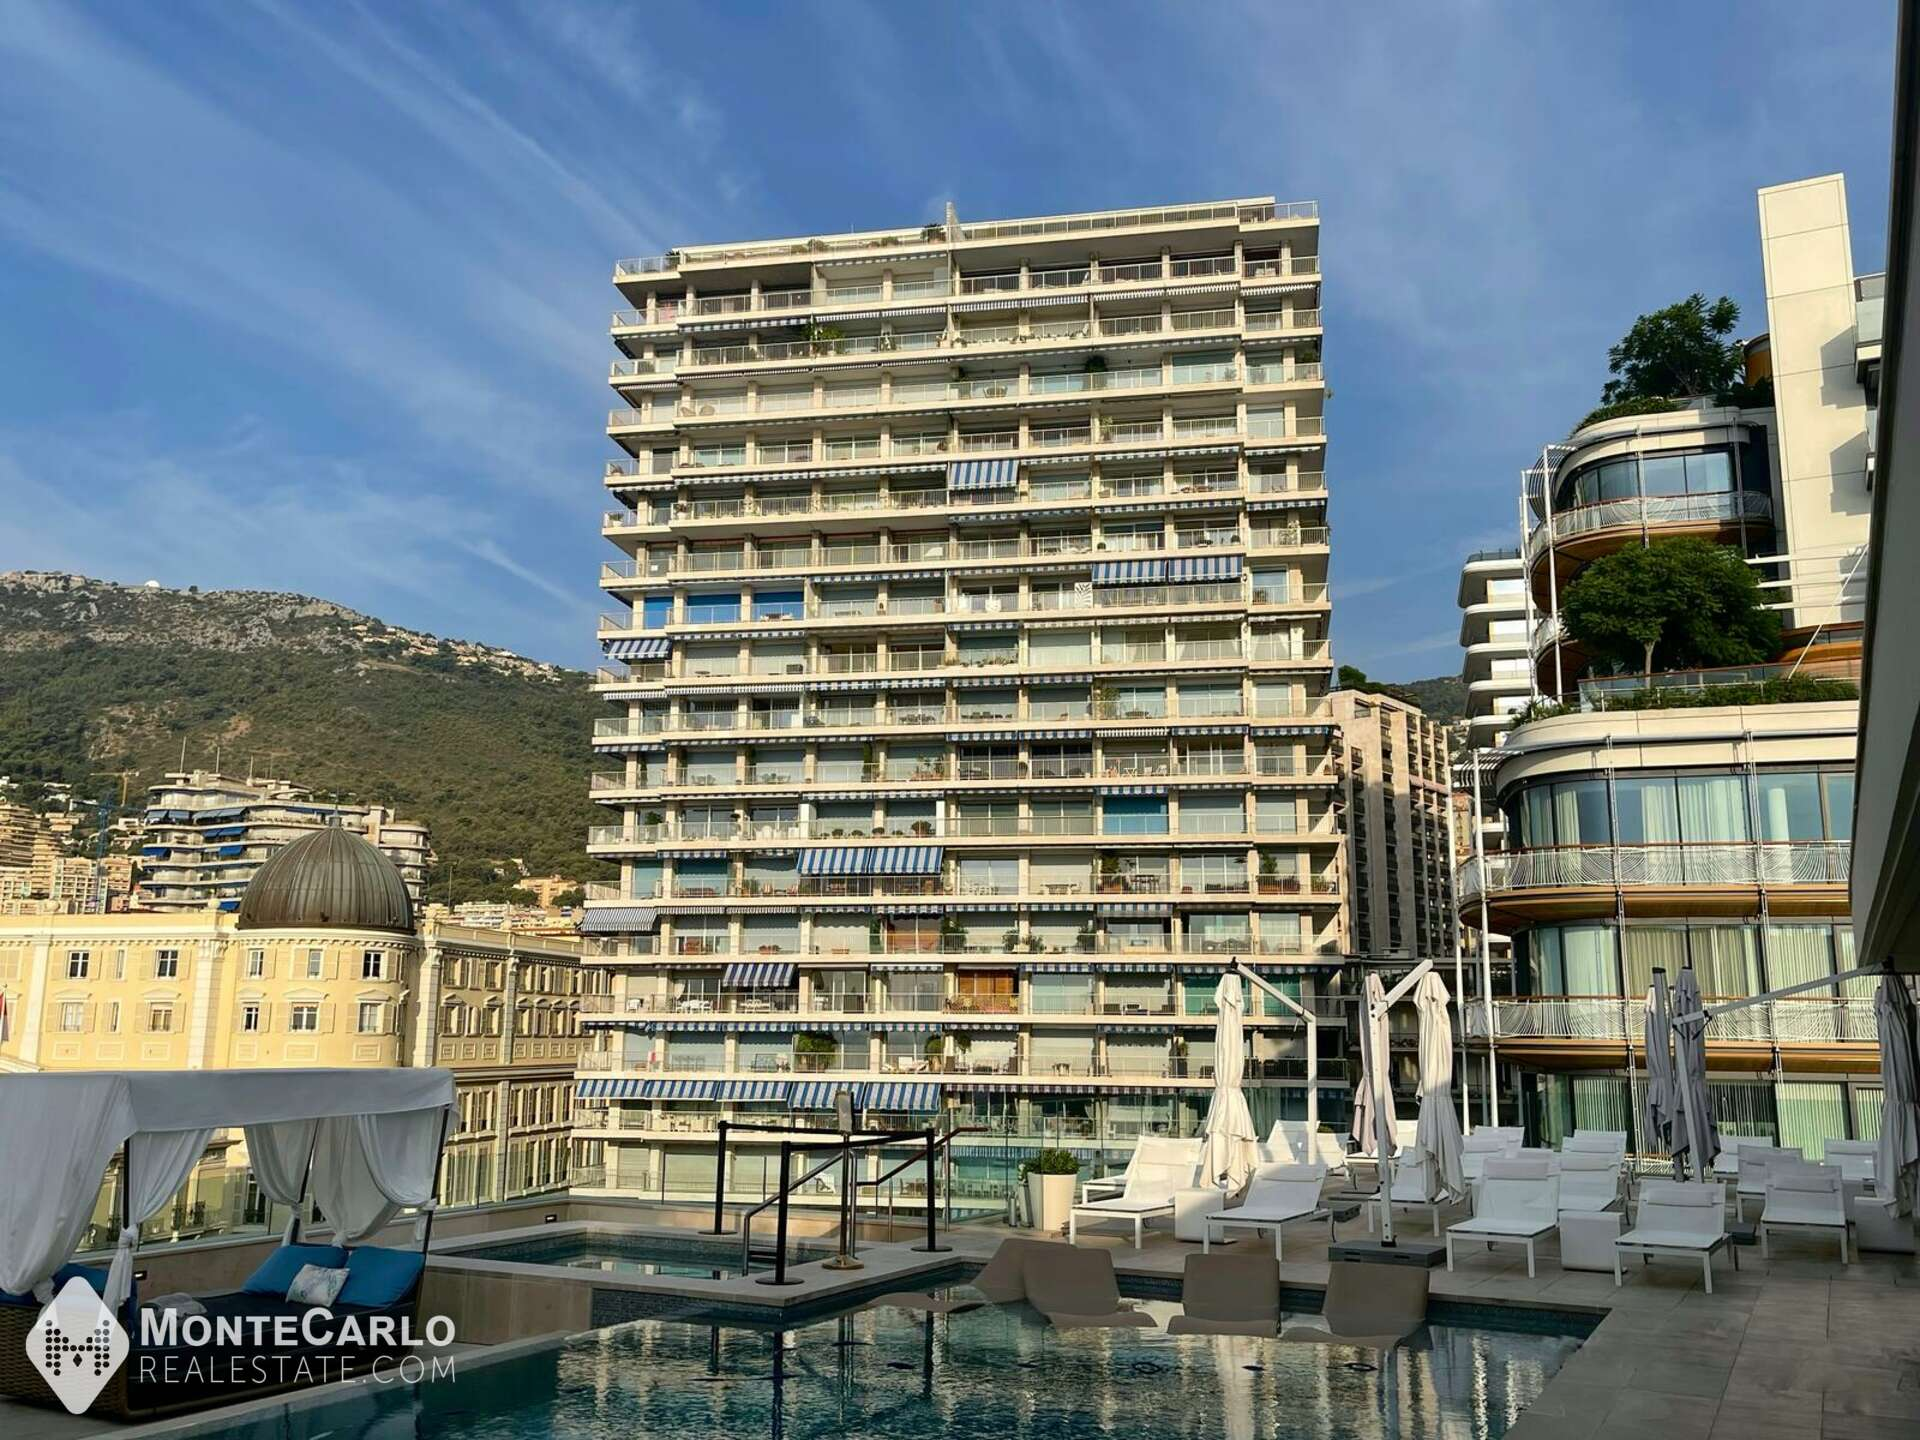 Location Sun Tower - Appartement / 2 pièces : 11 500 €   Monte-Carlo Real Estate [RD_Sun Tower_2P]